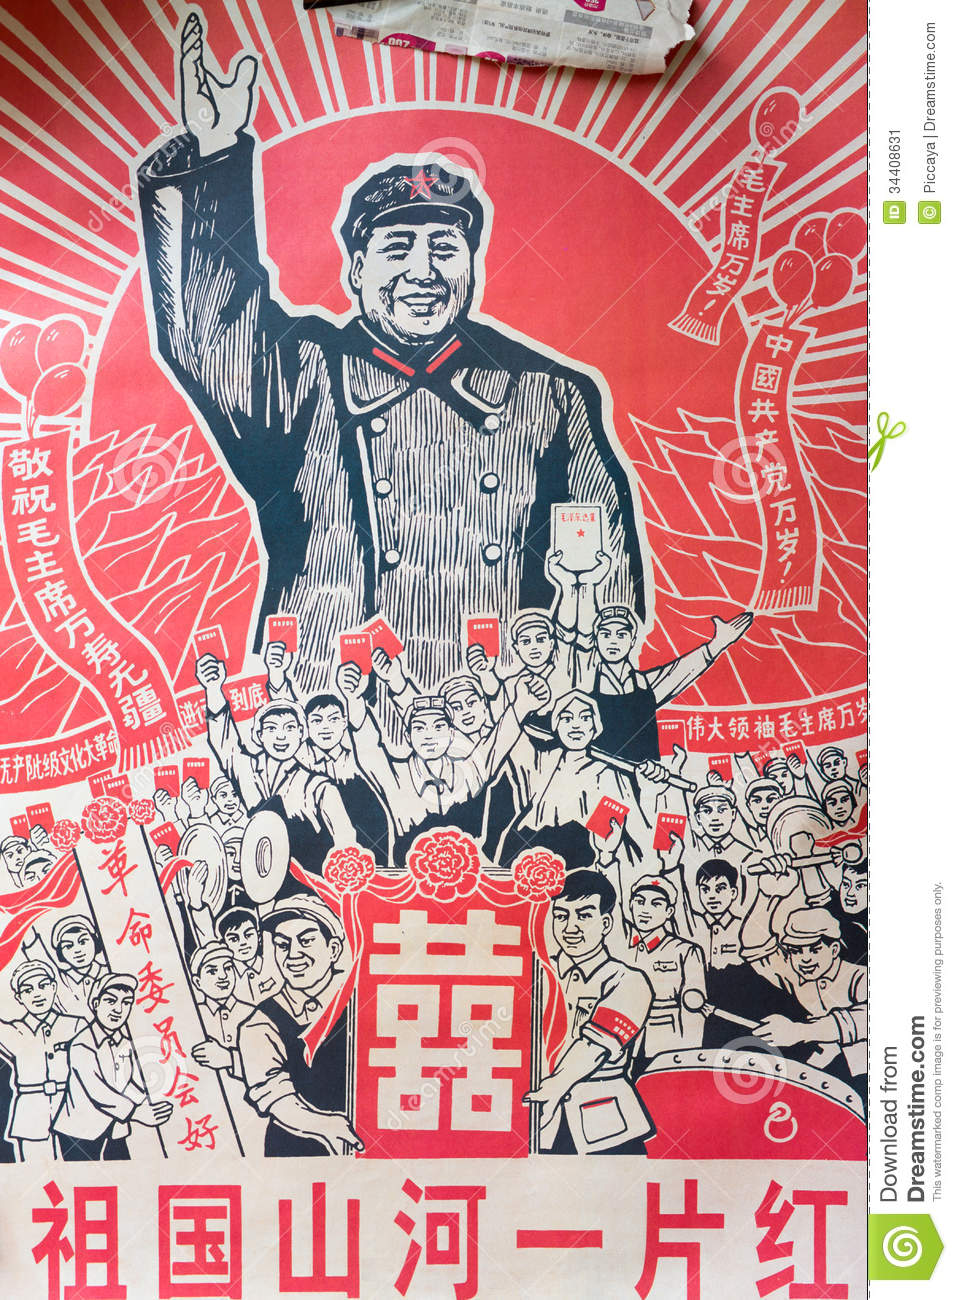 Old Communism Poster Editorial Photo Image 34408631